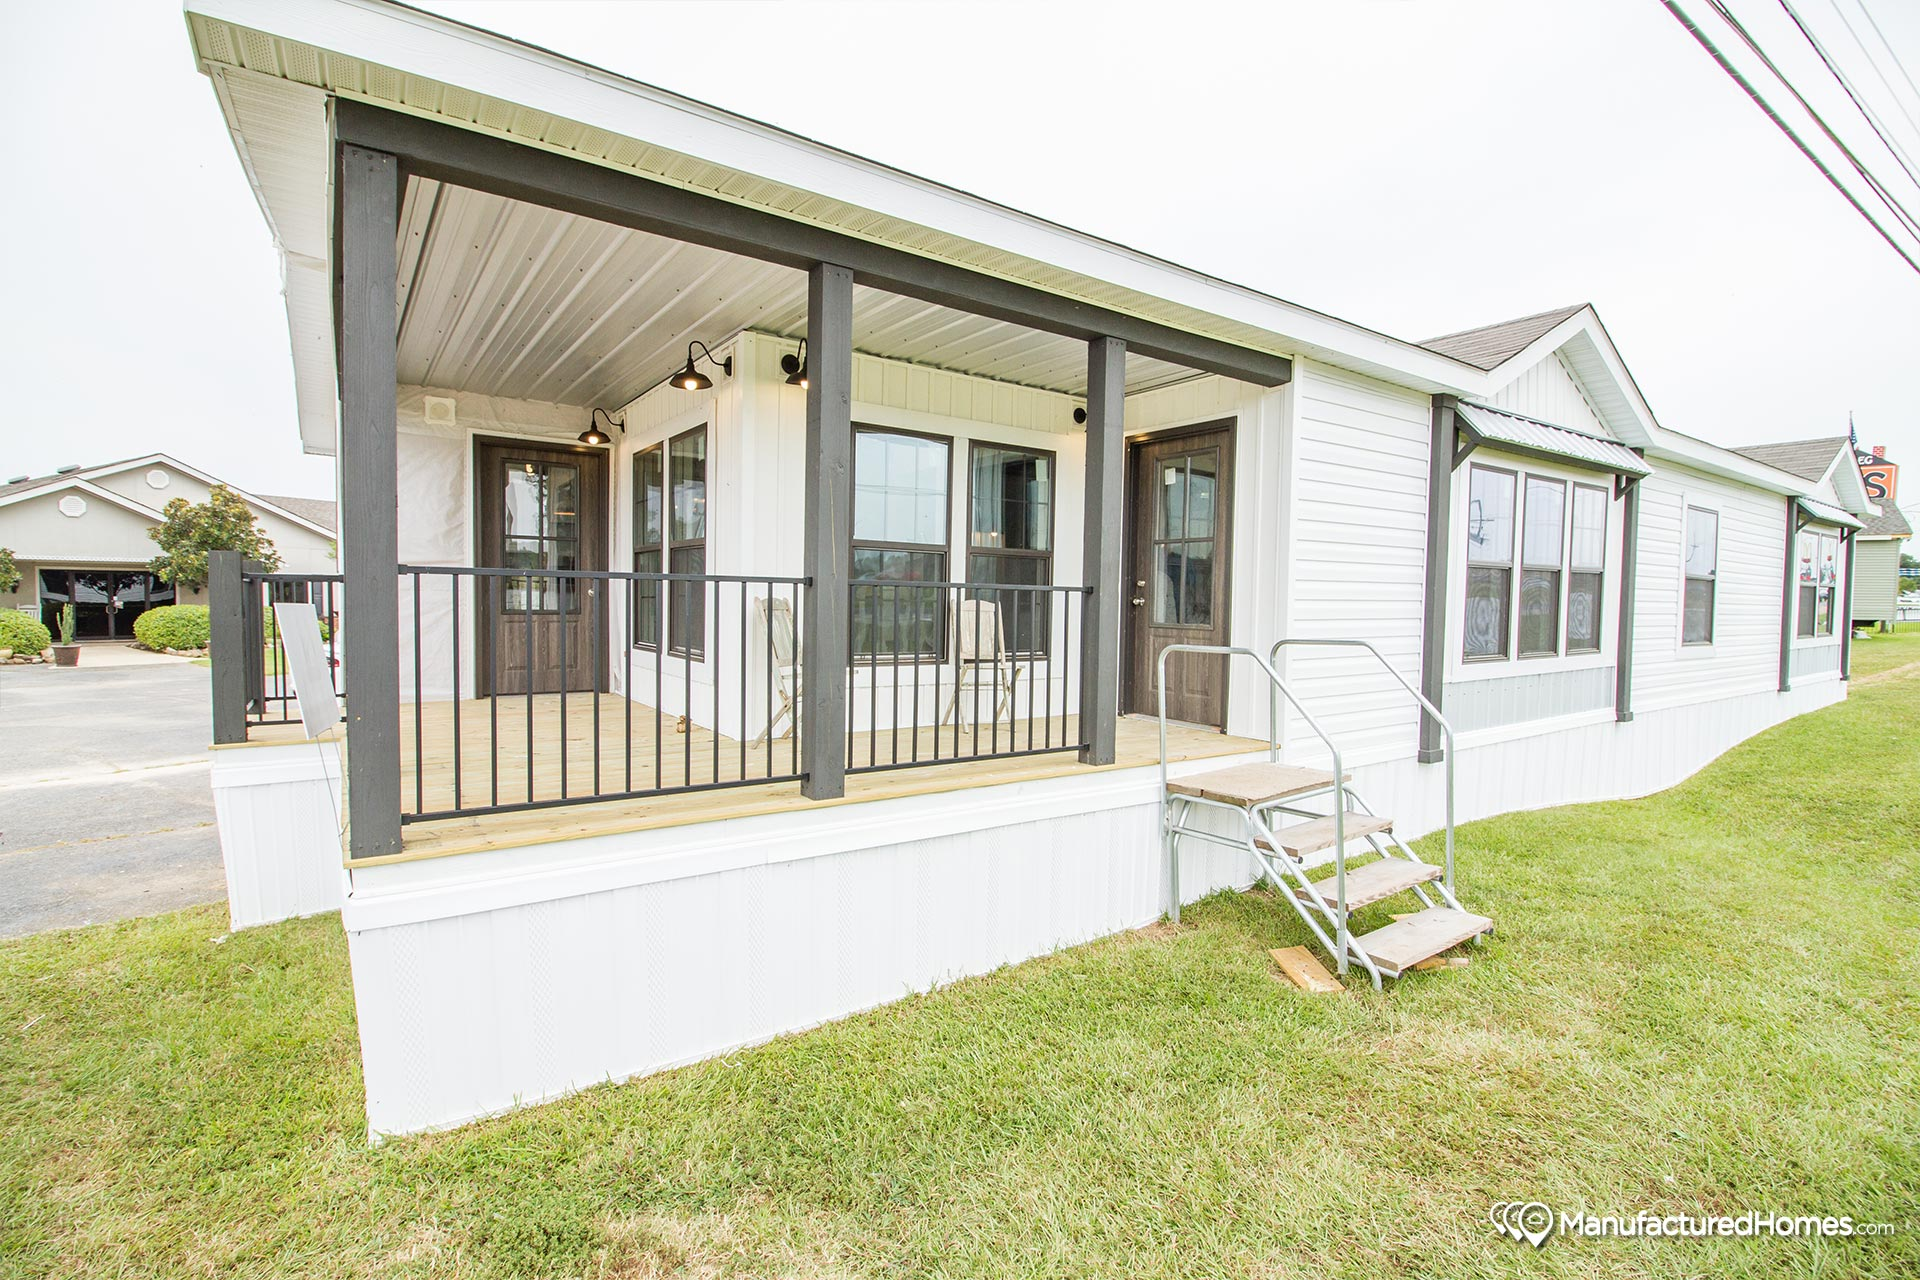 El Dorado Homes Of Louisiana In Shreveport La Manufactured Home Dealer